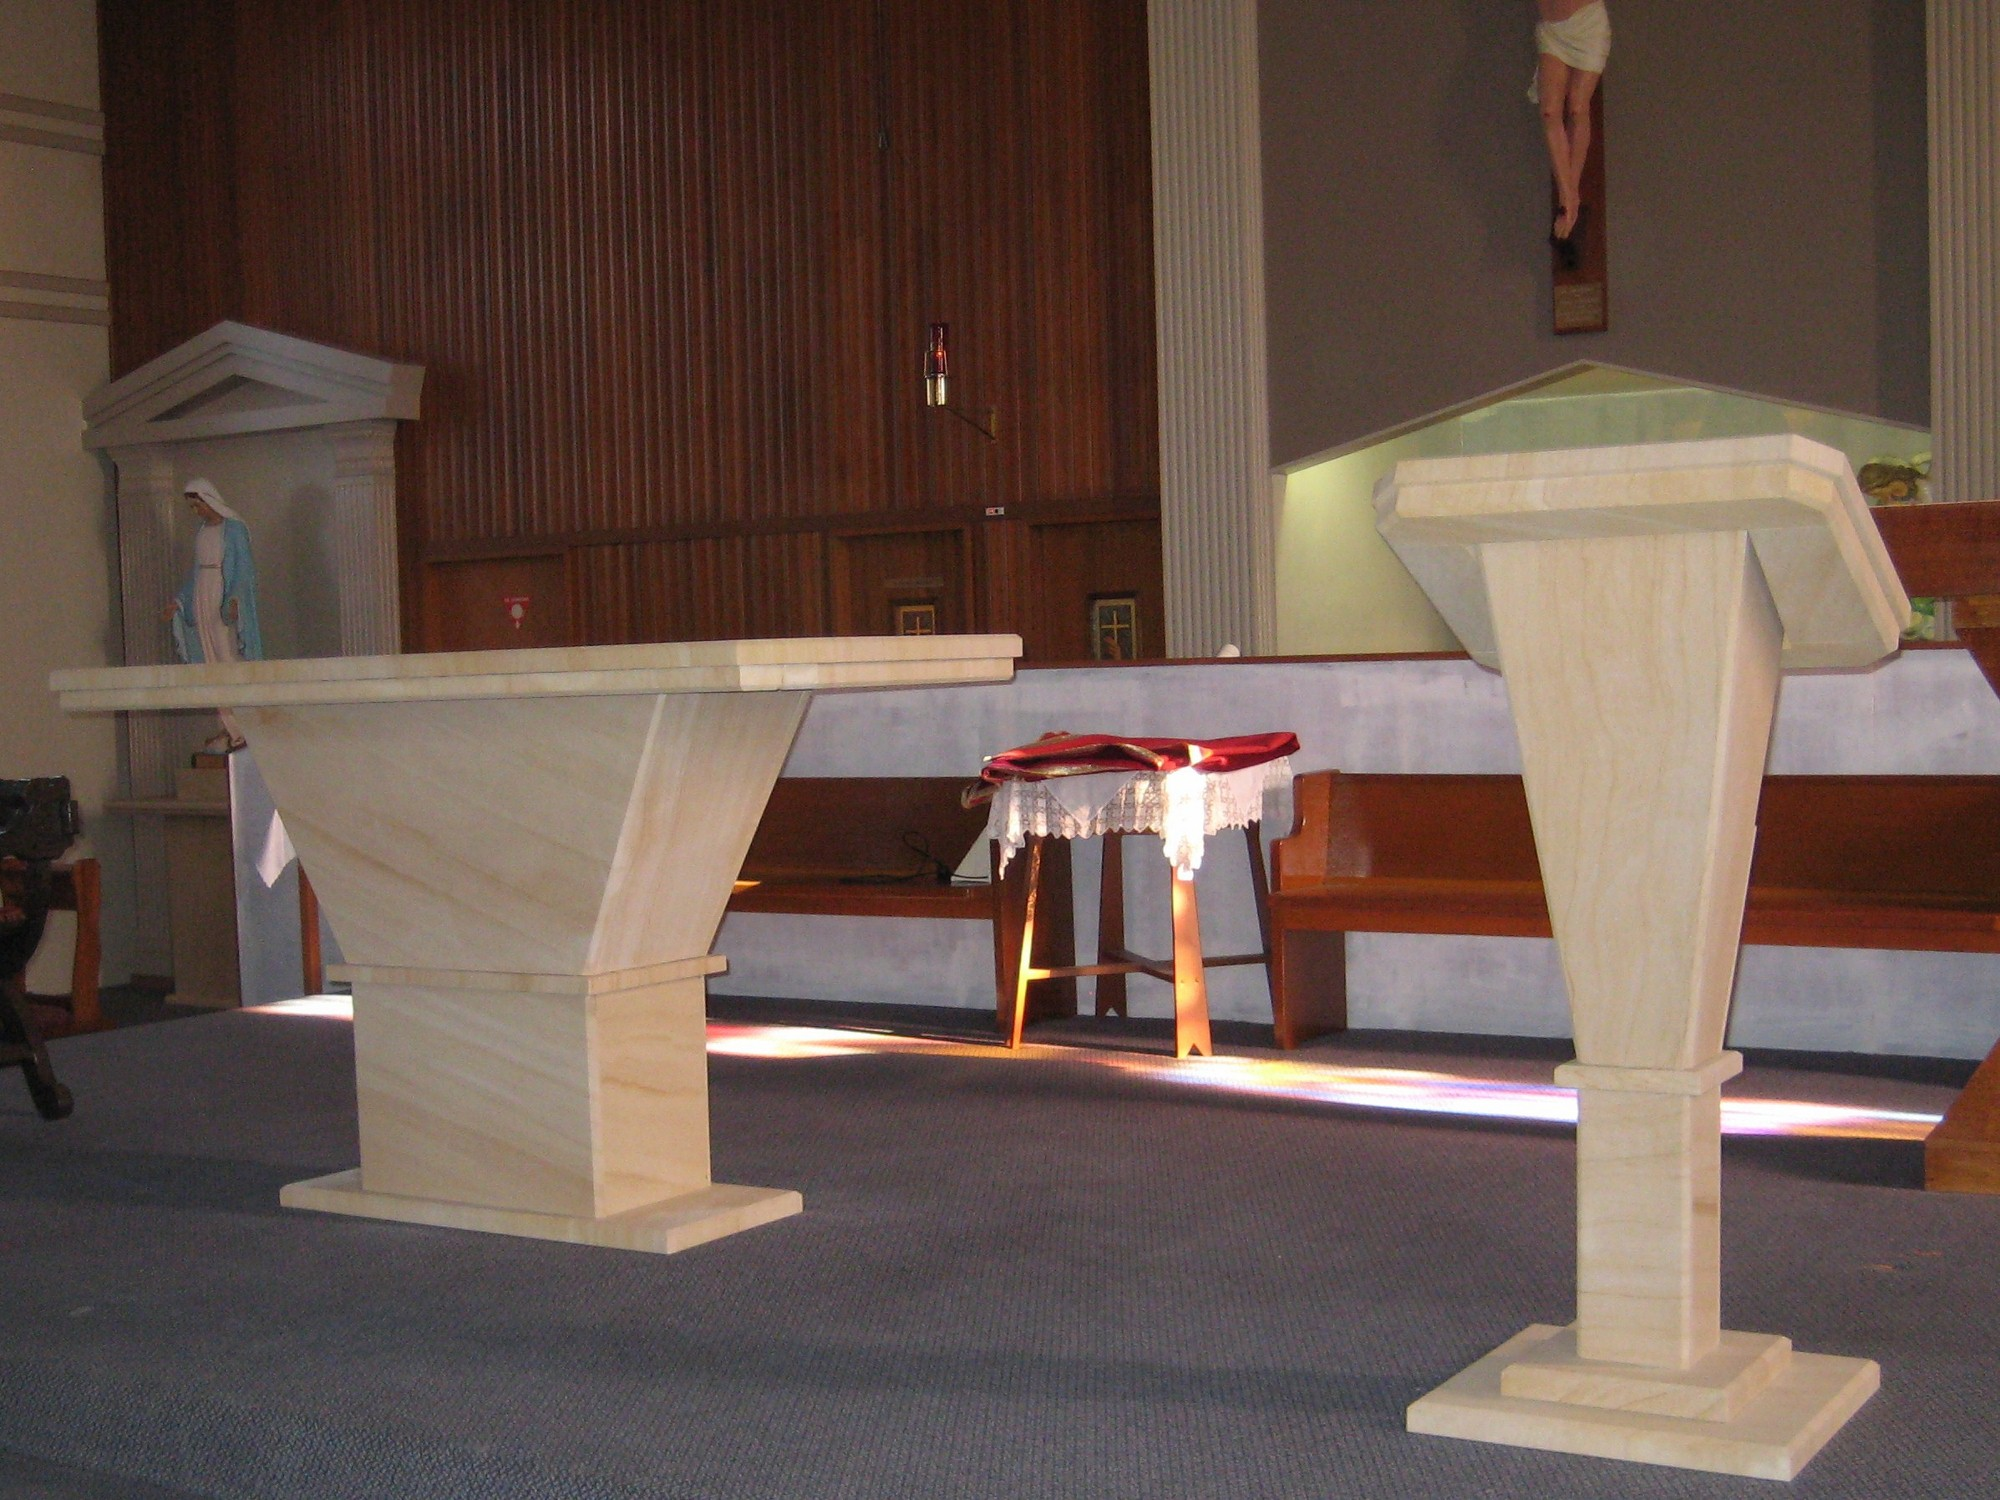 2. Woodgrain sandstone reading stand and oltar for churche. We make furniture to order.